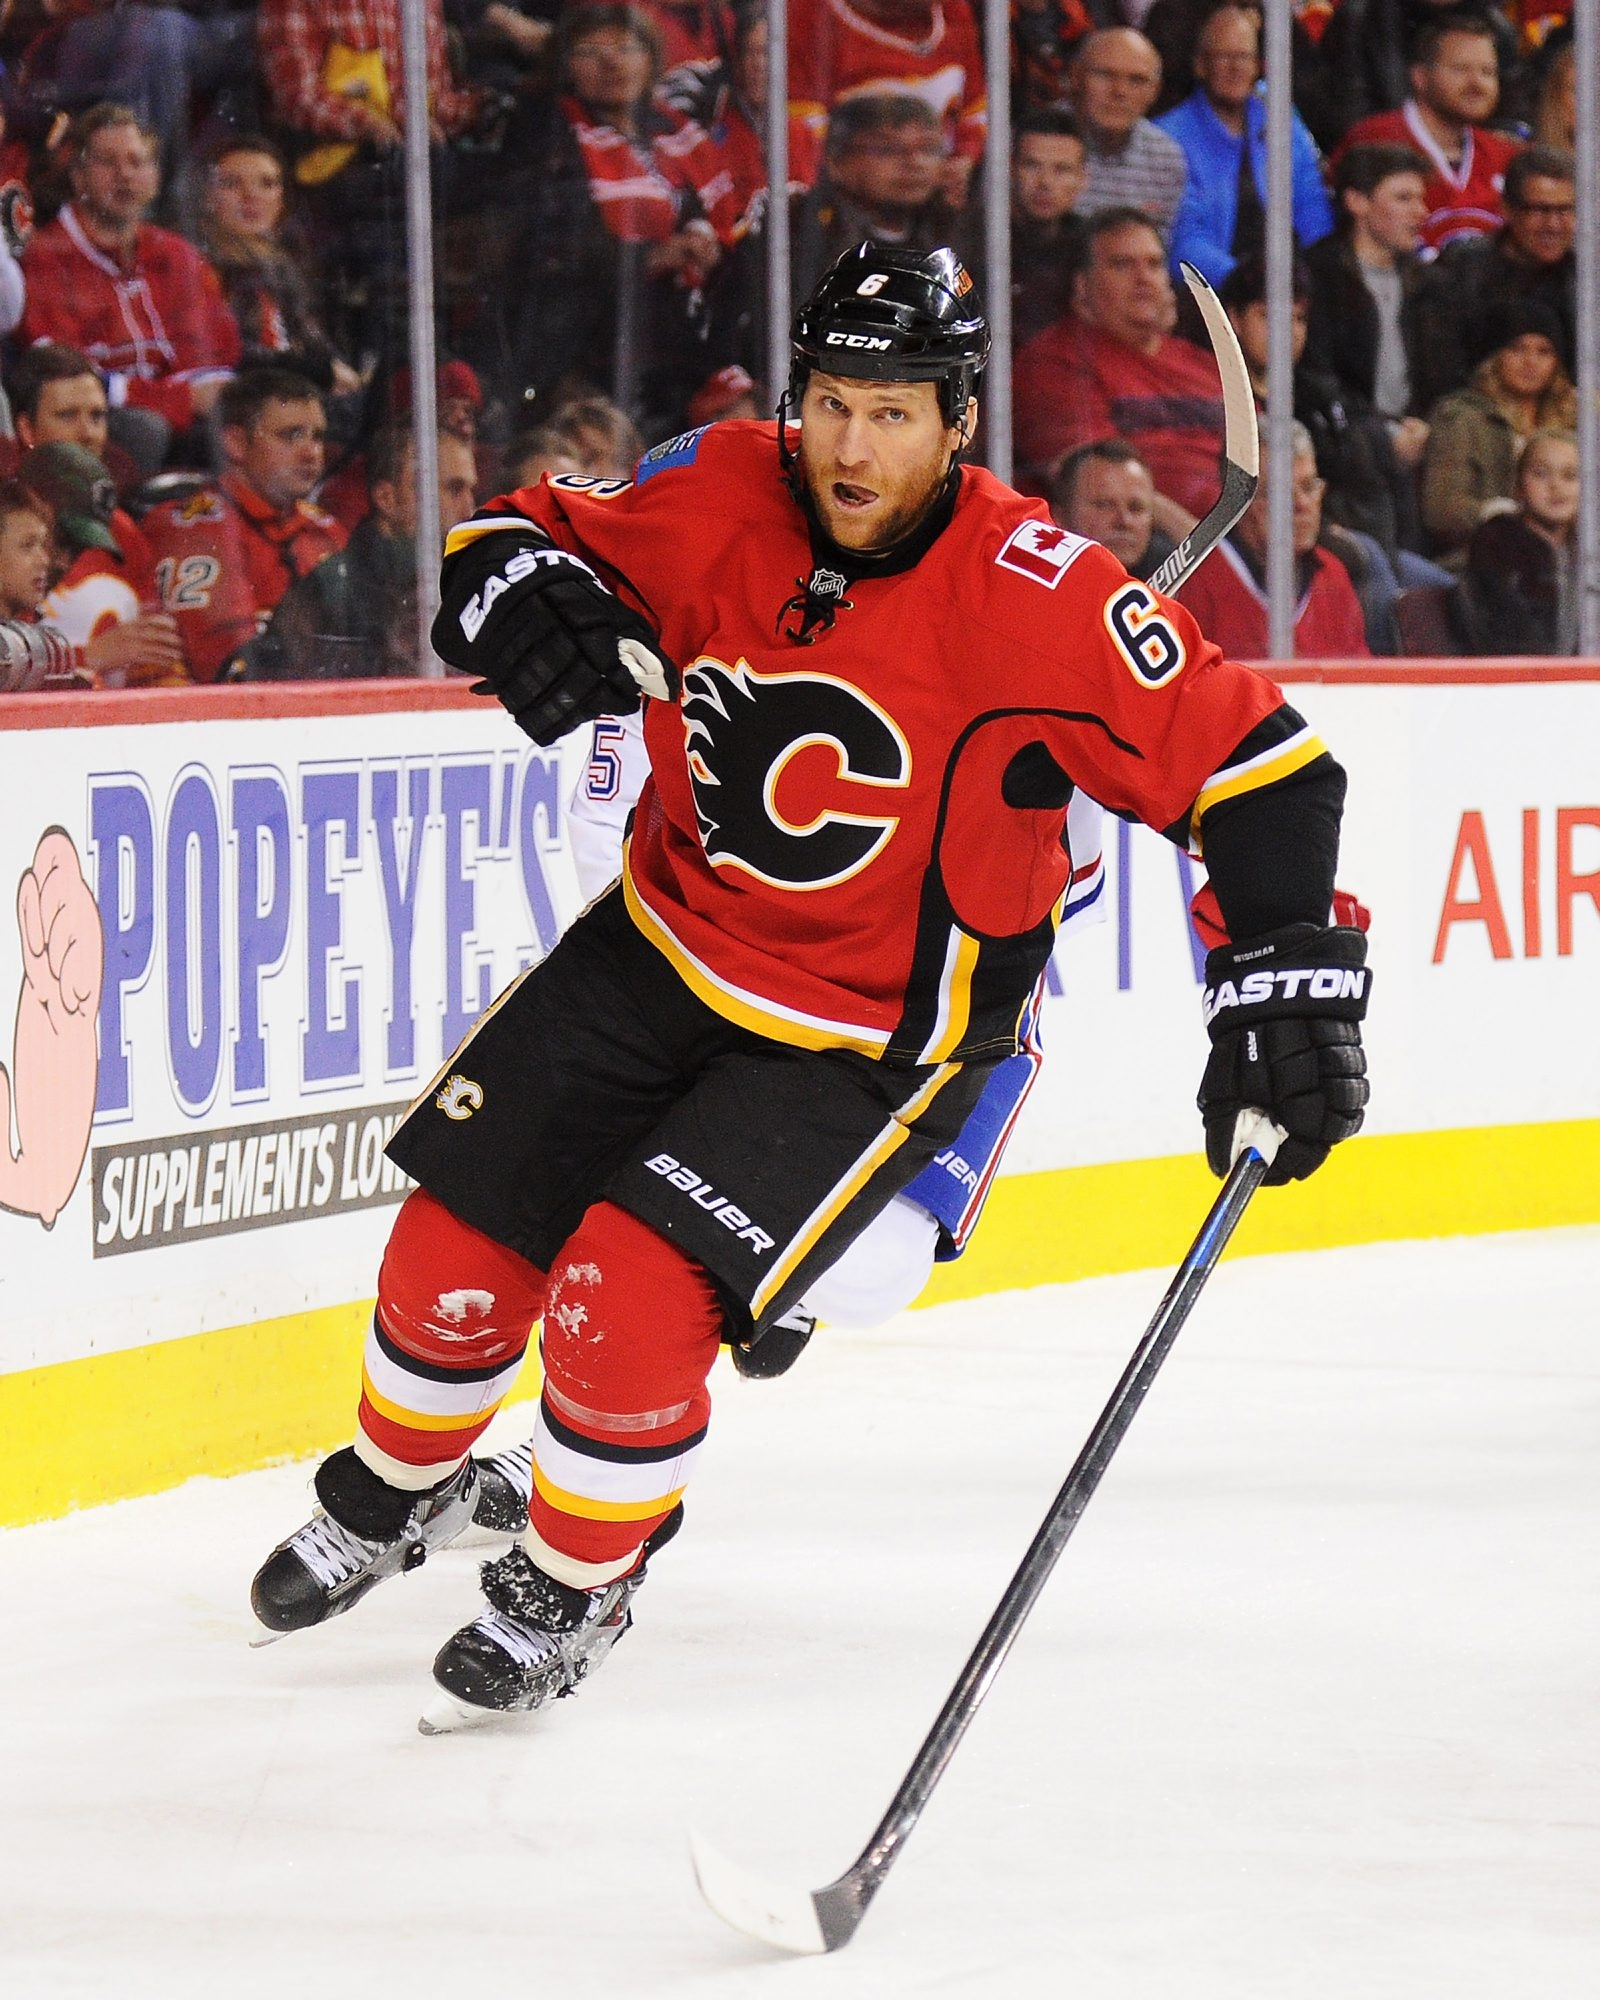 The latest developments surrounding the suspension of Dennis Wideman of the Calgary Flames are quite complicated.